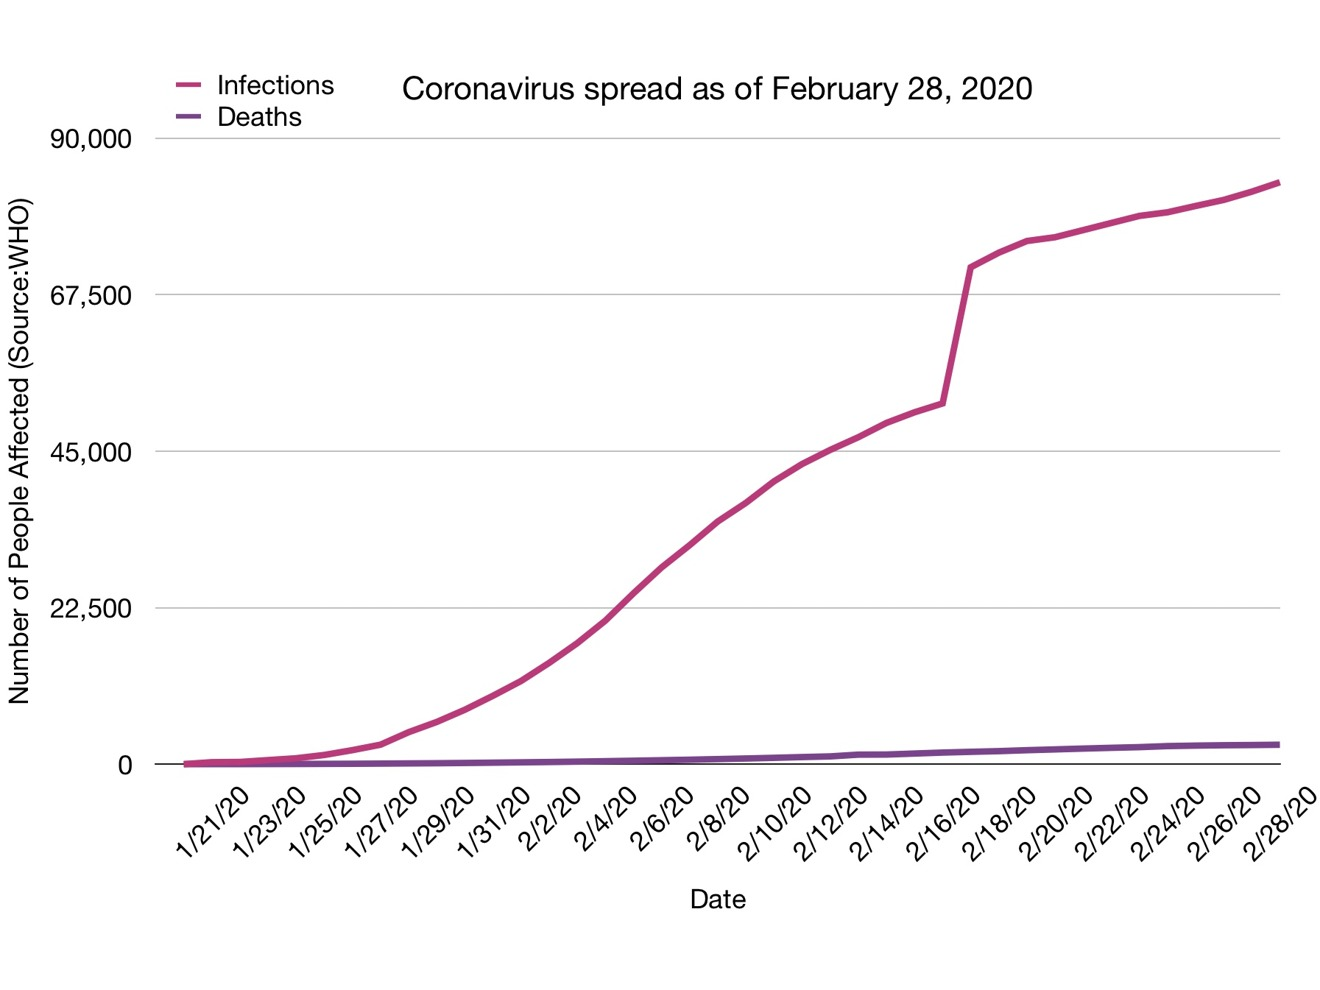 Coronavirus infections vs deaths as of February 28